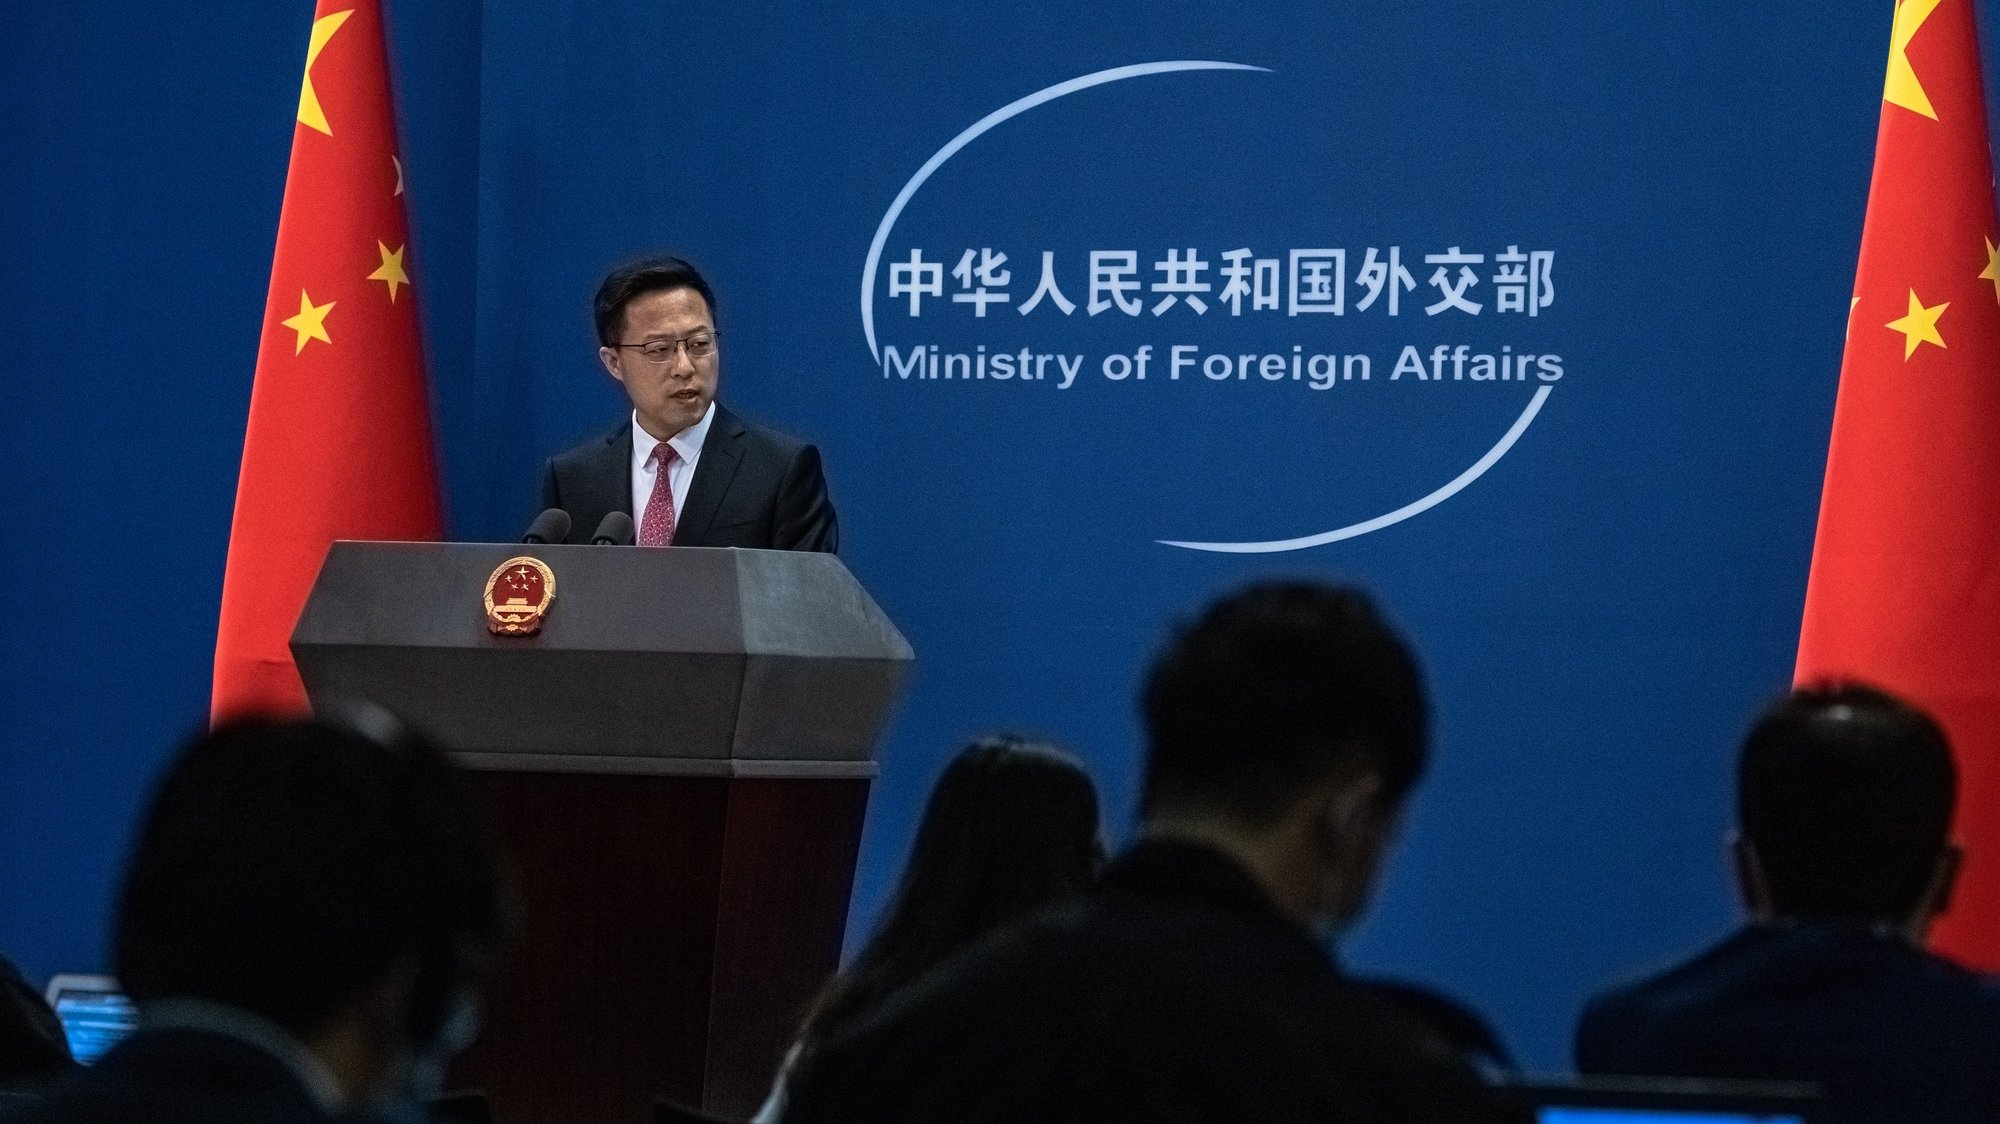 epa09083383 Chinese Foreign Ministry spokesman Zhao Lijian speaks during a daily media briefing in Beijing, China, 19 March 2021. Canadians Michael Spavor and Michael Kovrig, detained by Chinese authorities in 2018 and accused of espionage, will go on trial on 19 and 22 March 2021.  EPA/ROMAN PILIPEY